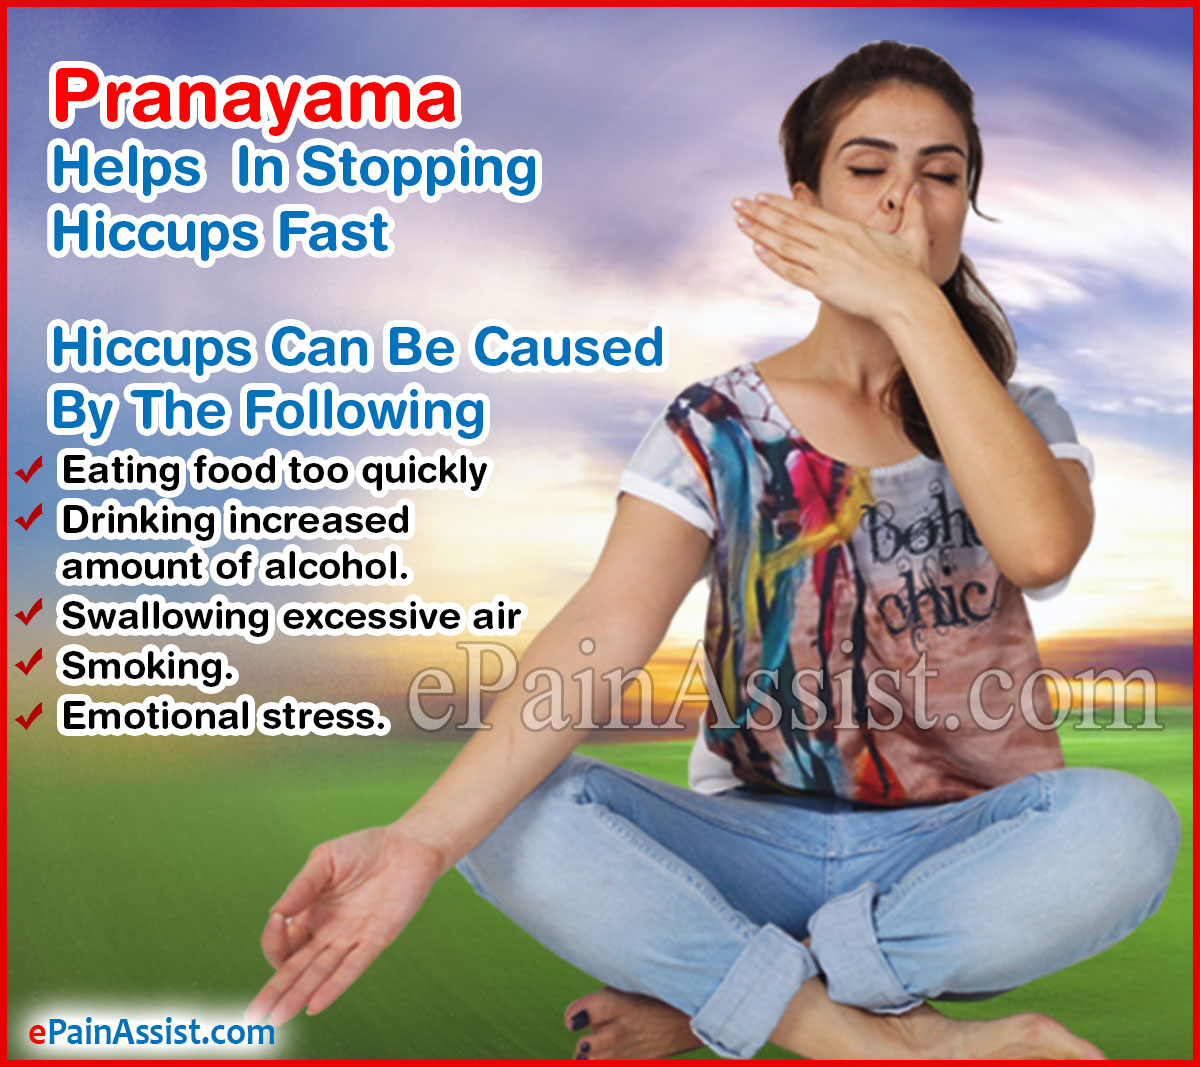 Pranayama Helps In Stopping Hiccups Fast